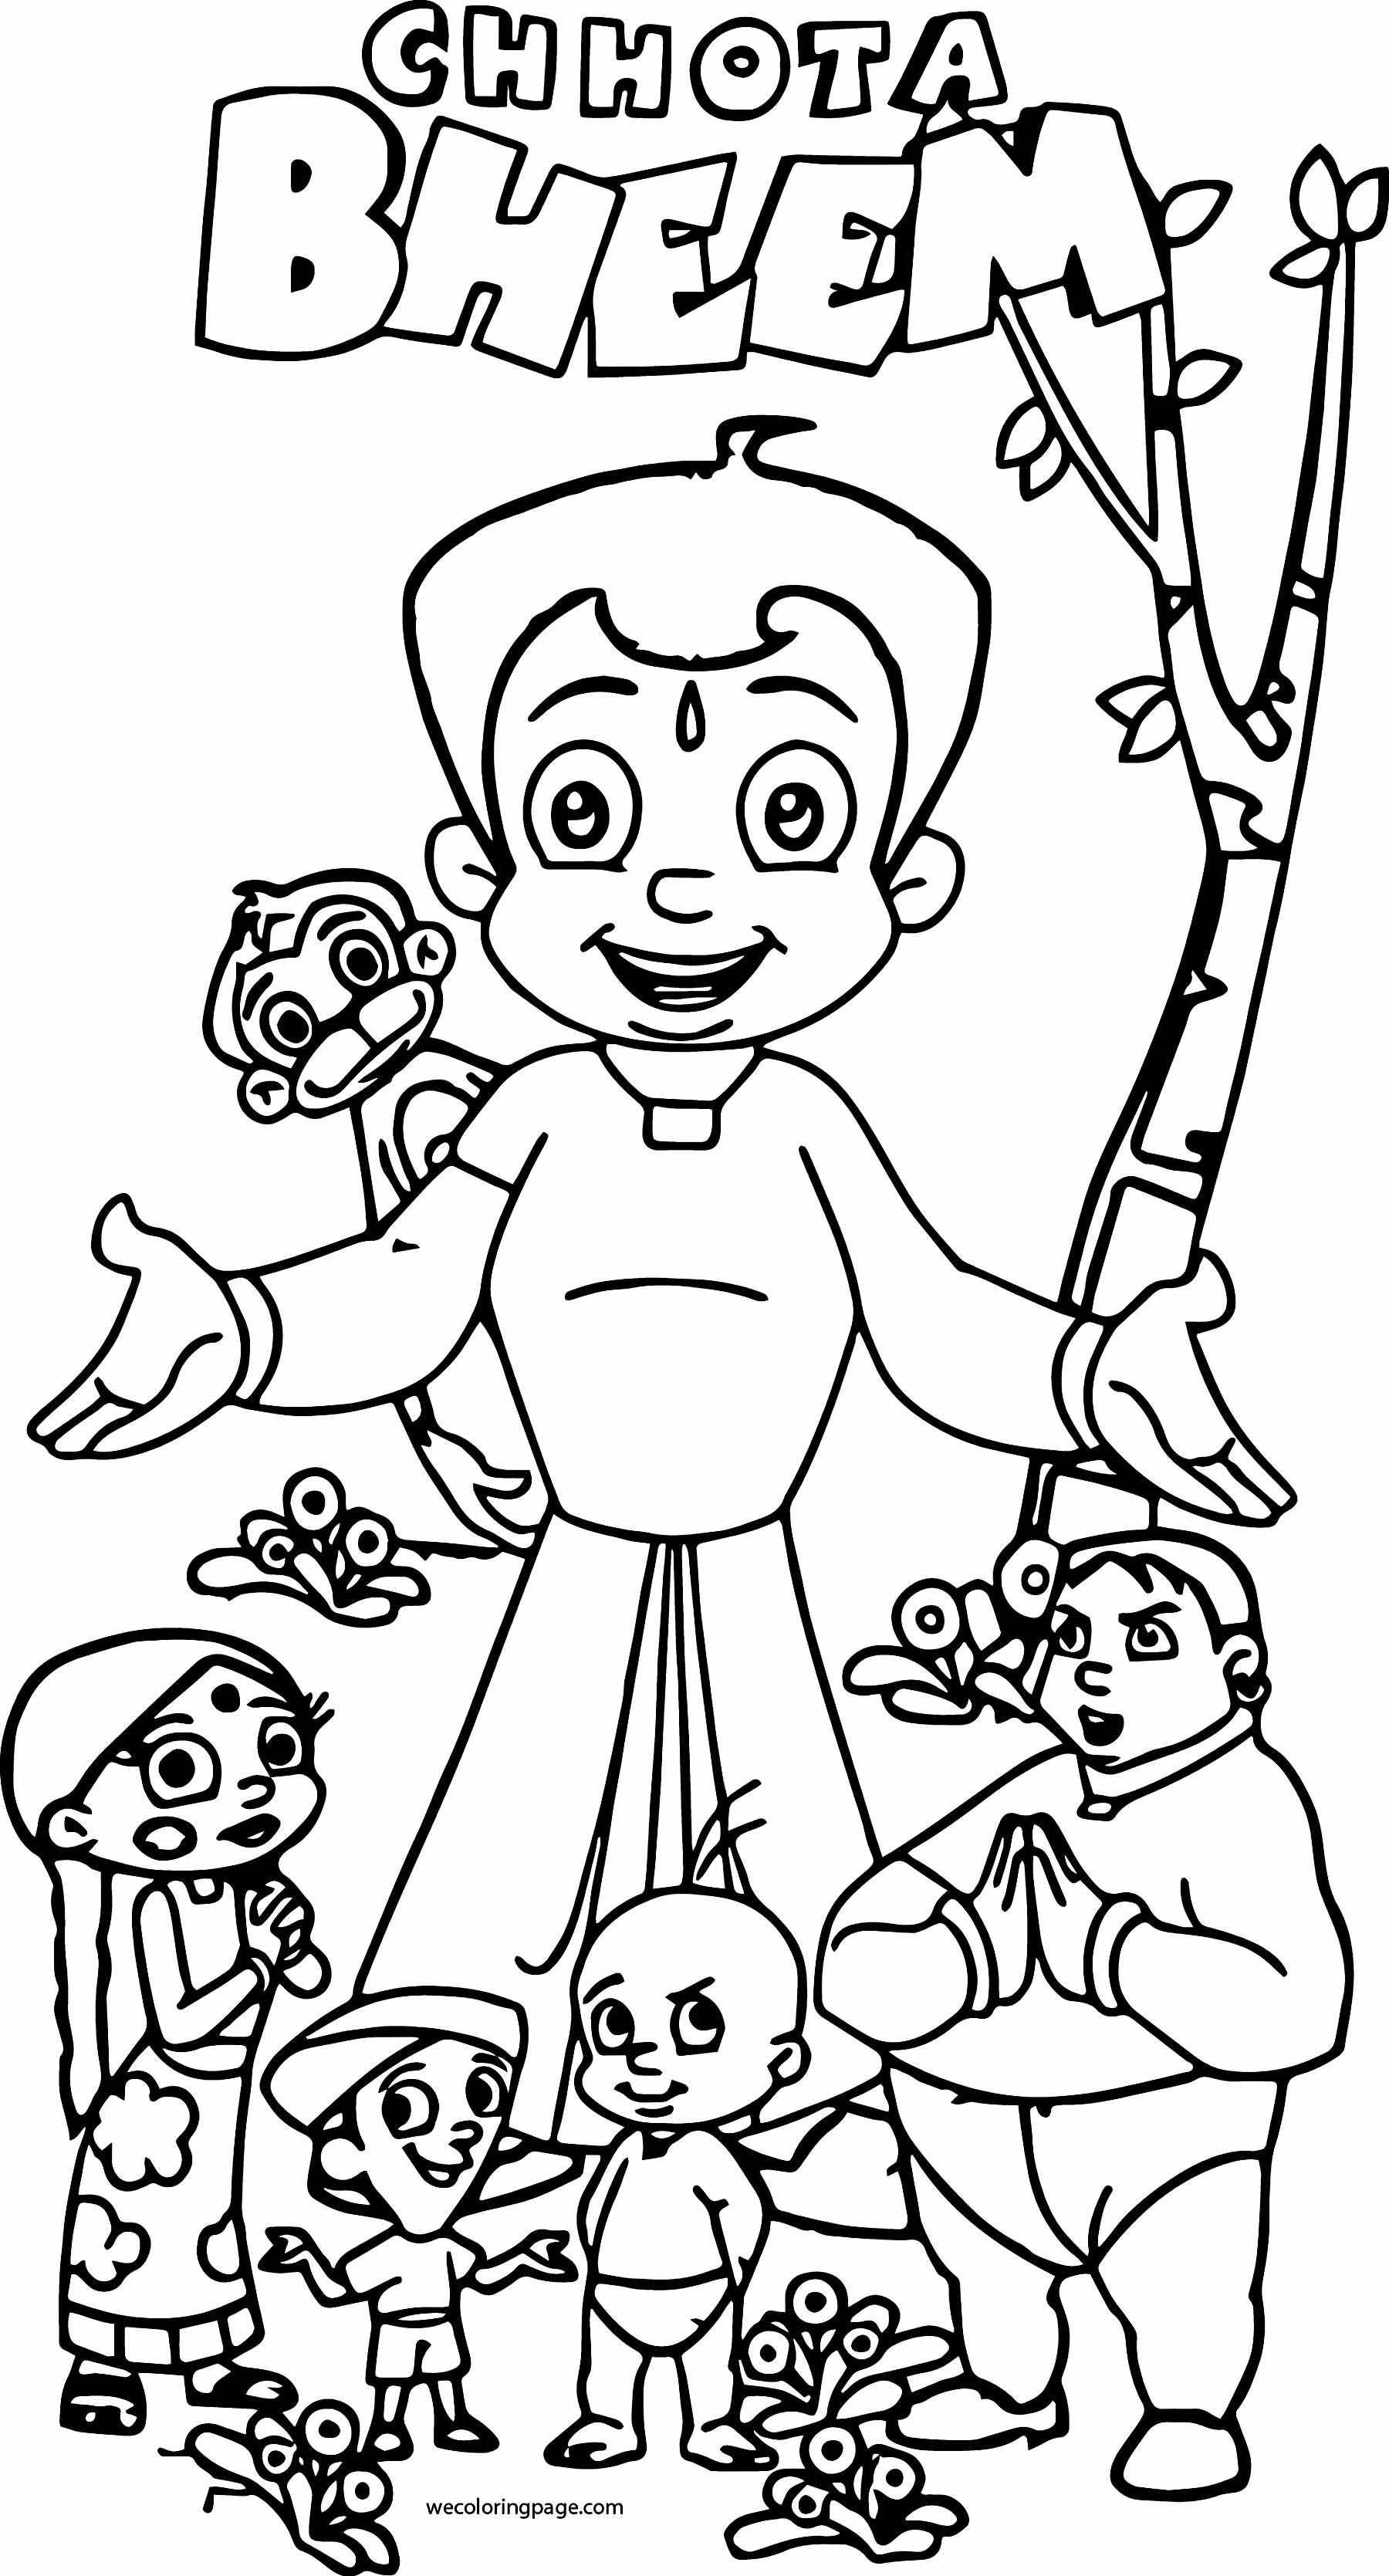 Chhota Bheem And Friends Play Coloring Page 37